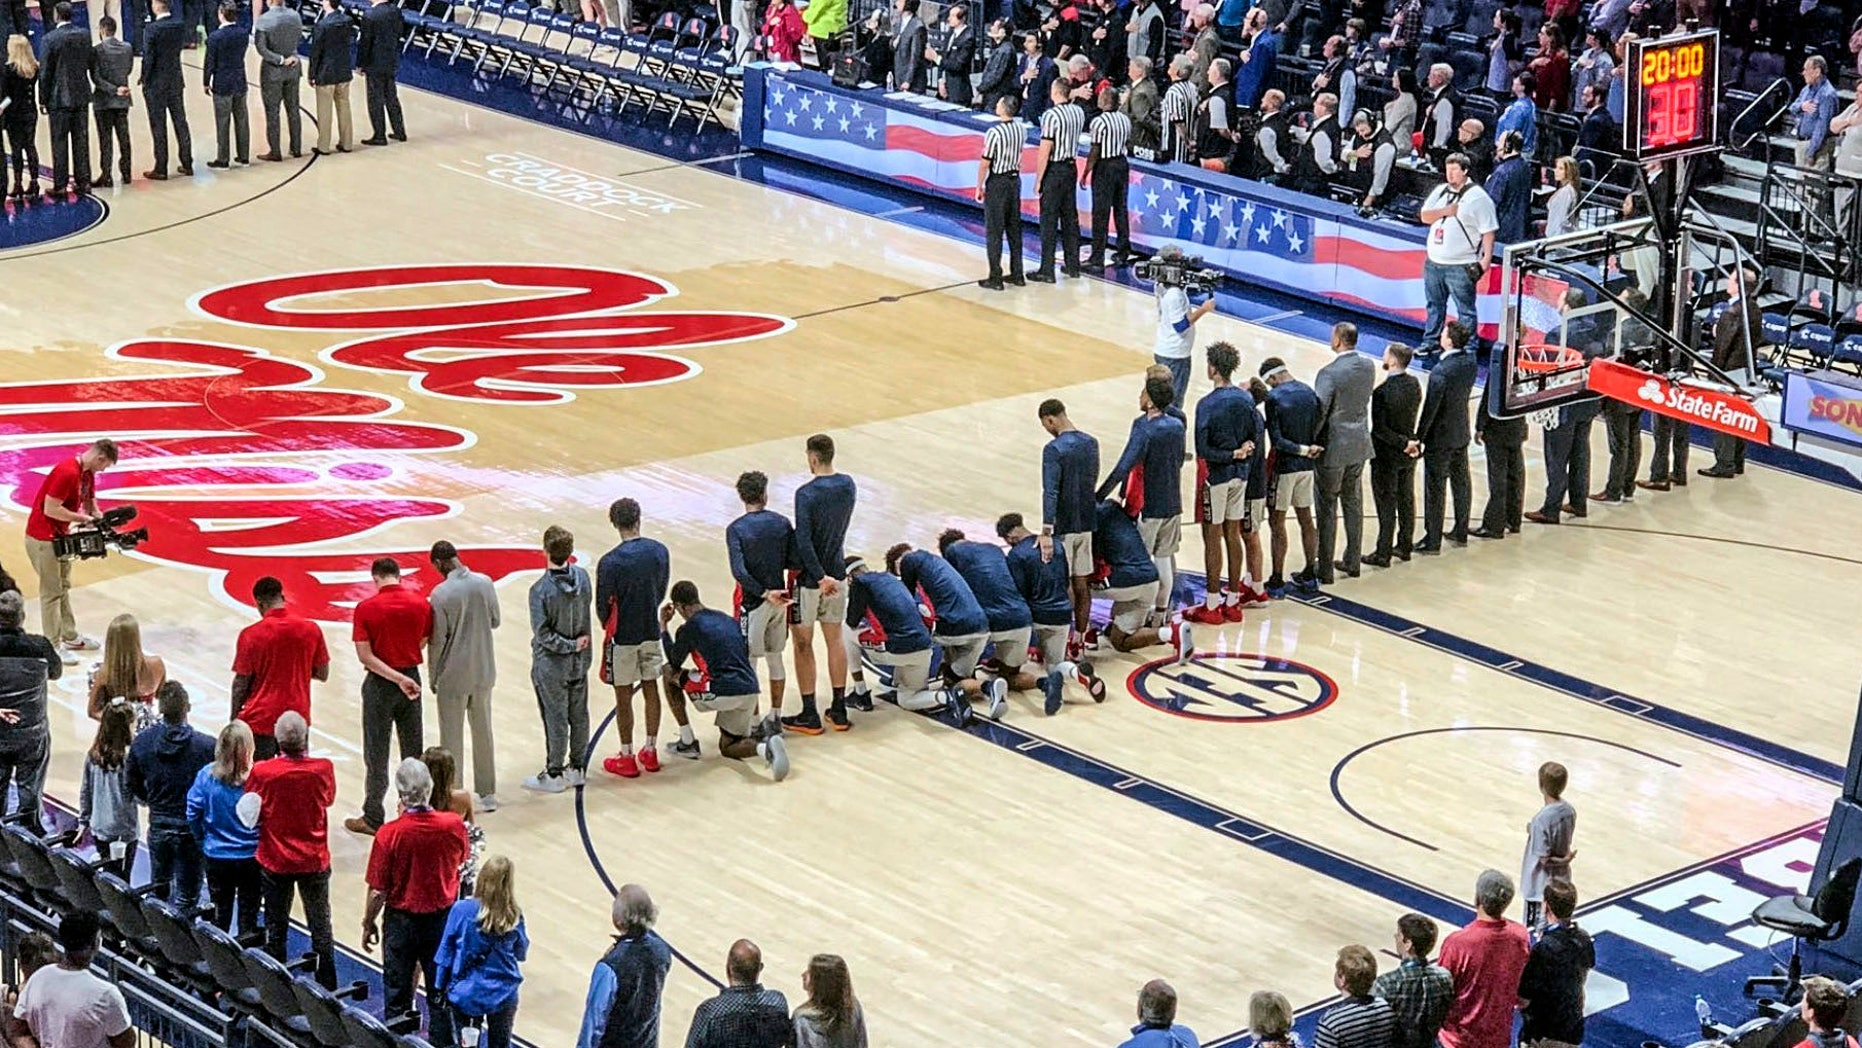 Ole Miss players kneel in response to Confederate rally